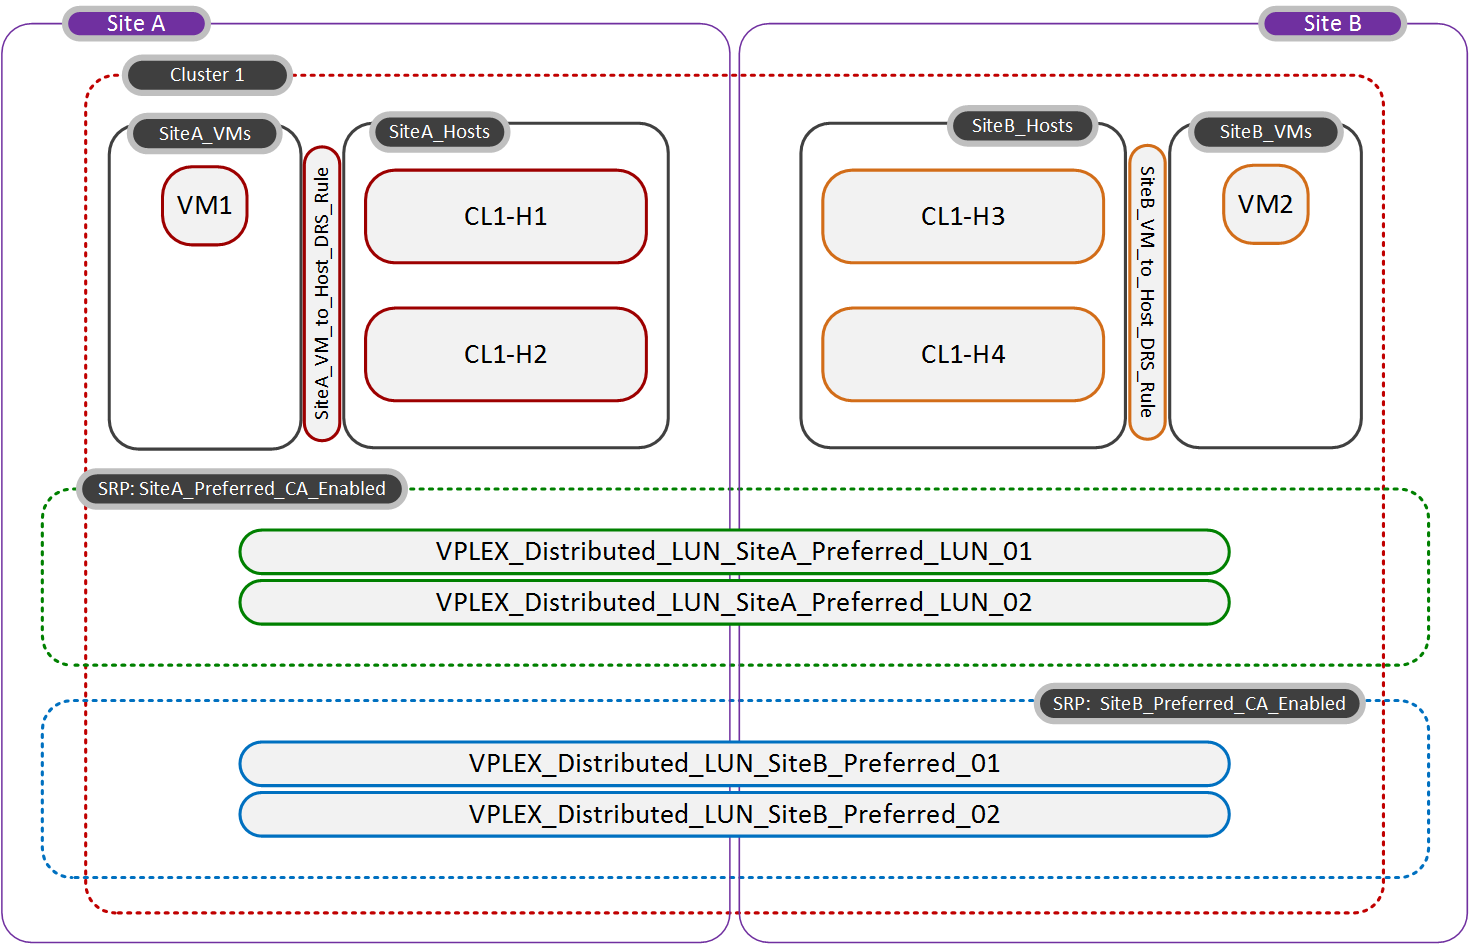 Figure 19 shows a simple example of two scenarios where virtual machines are deployed to a vmsc and how the logic operates to place those virtual machines on their preferred sites. Figure 19.